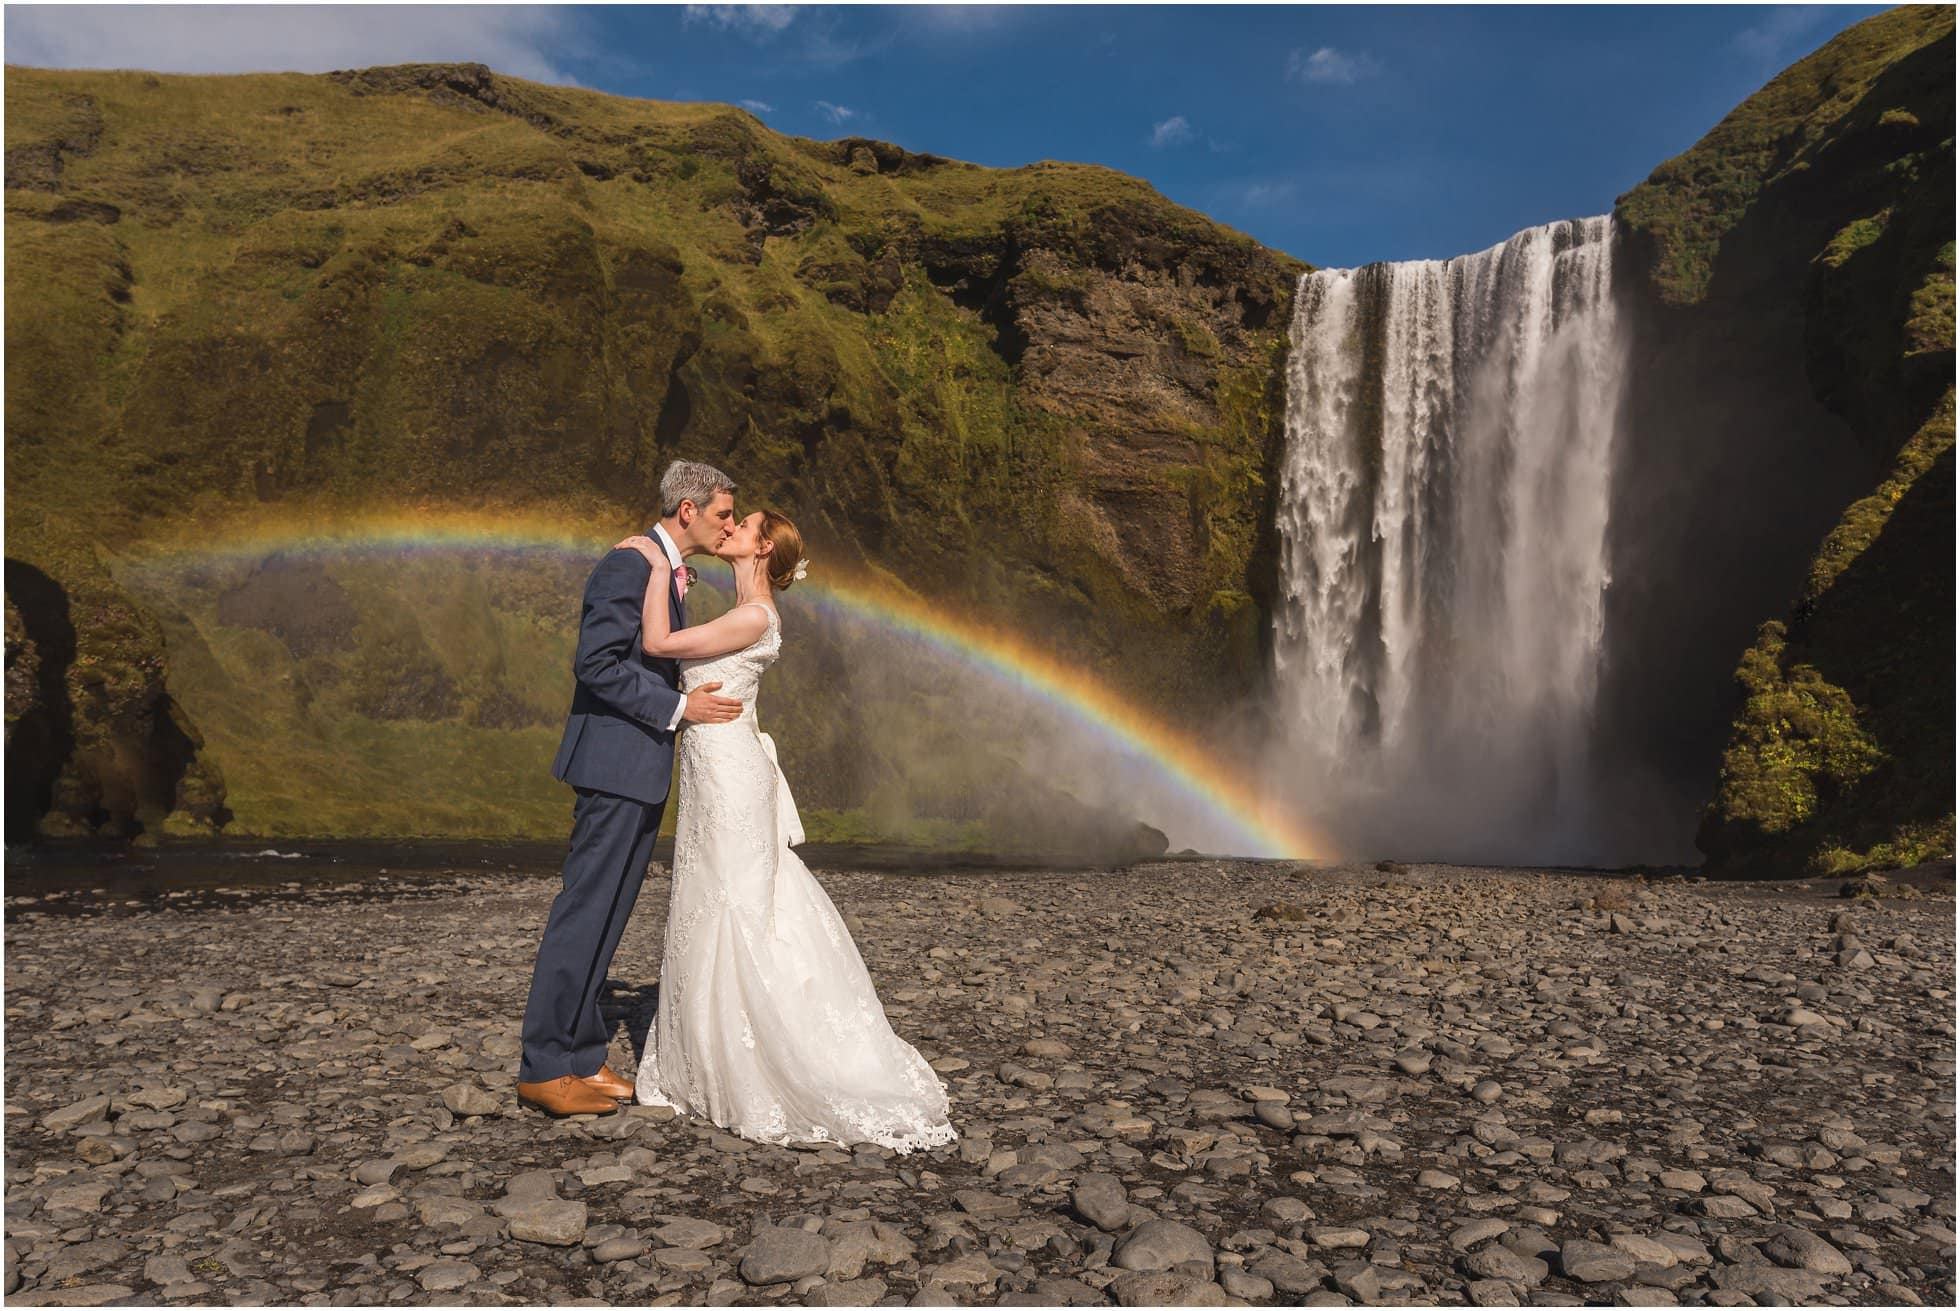 English speaking Iceland Wedding Photographer image of Skógarfoss rainbow waterfall